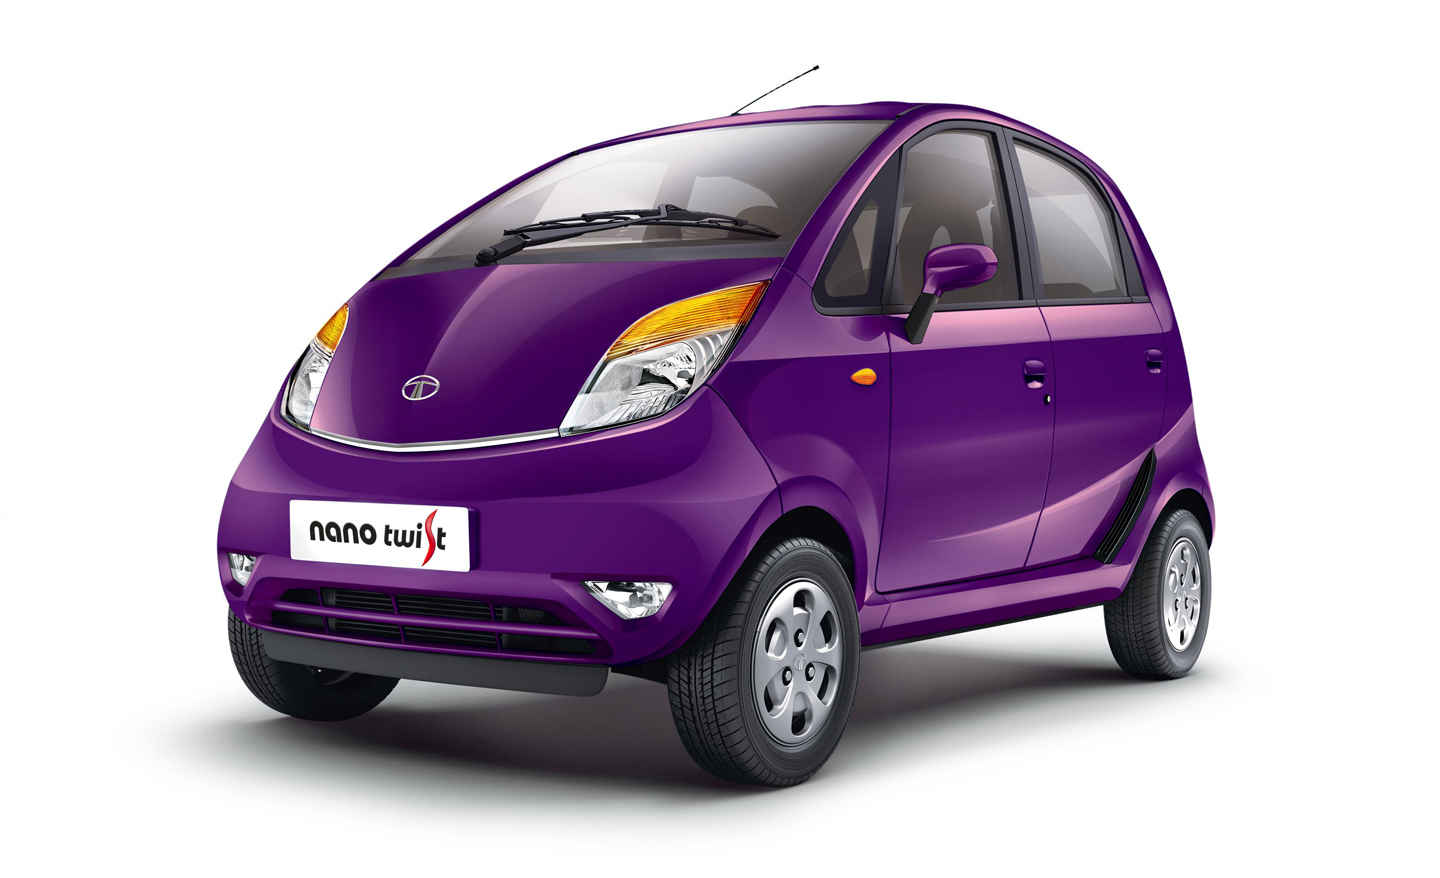 Tata-Nano-Twist-Pics-Front-side